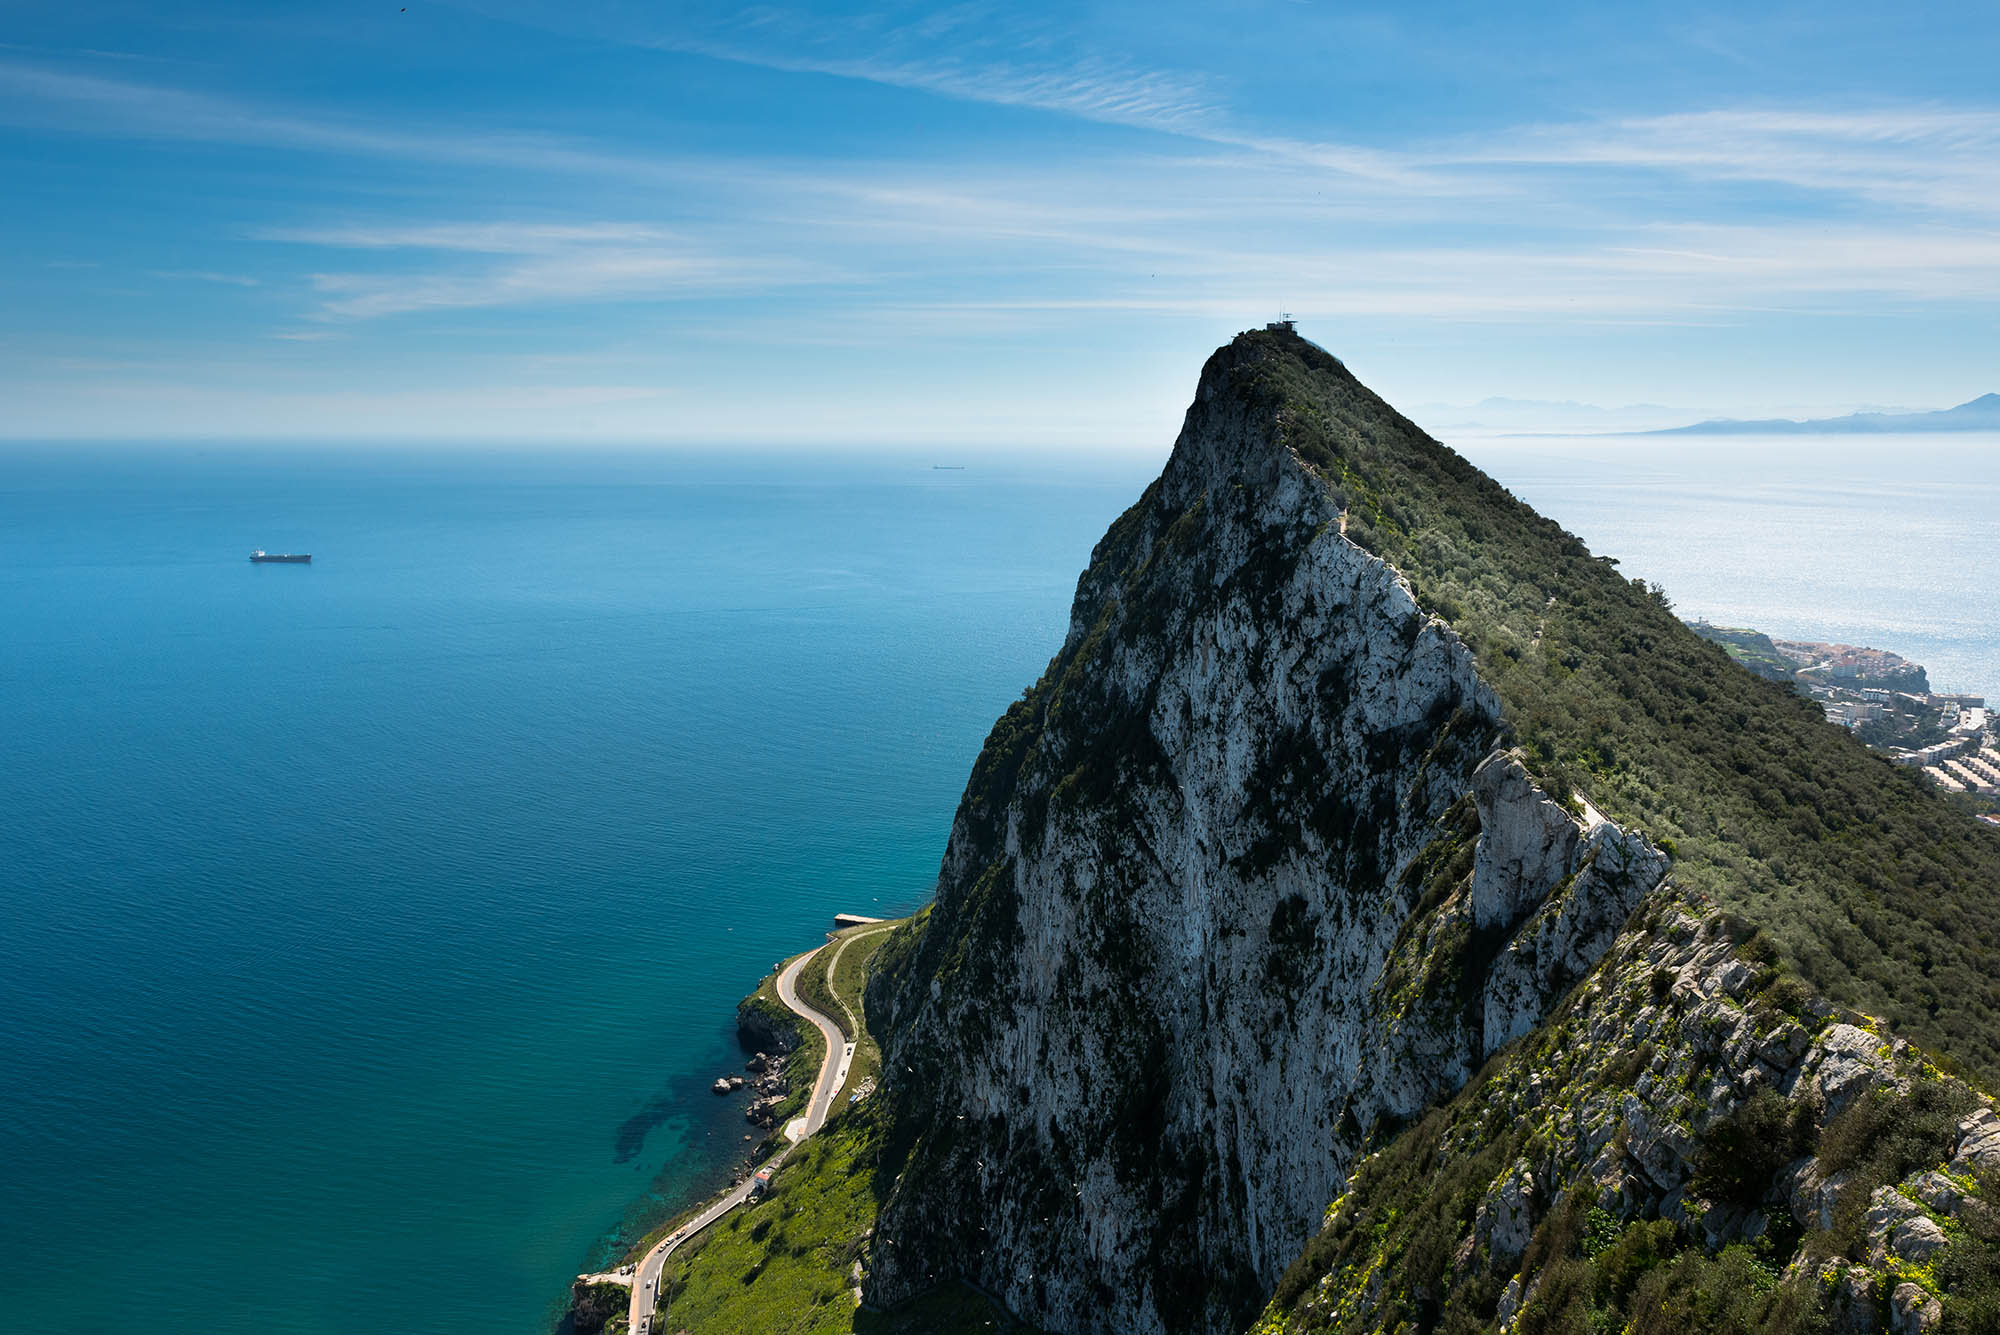 How To Climb The Rock Of Gibraltar 1 Life On Earth